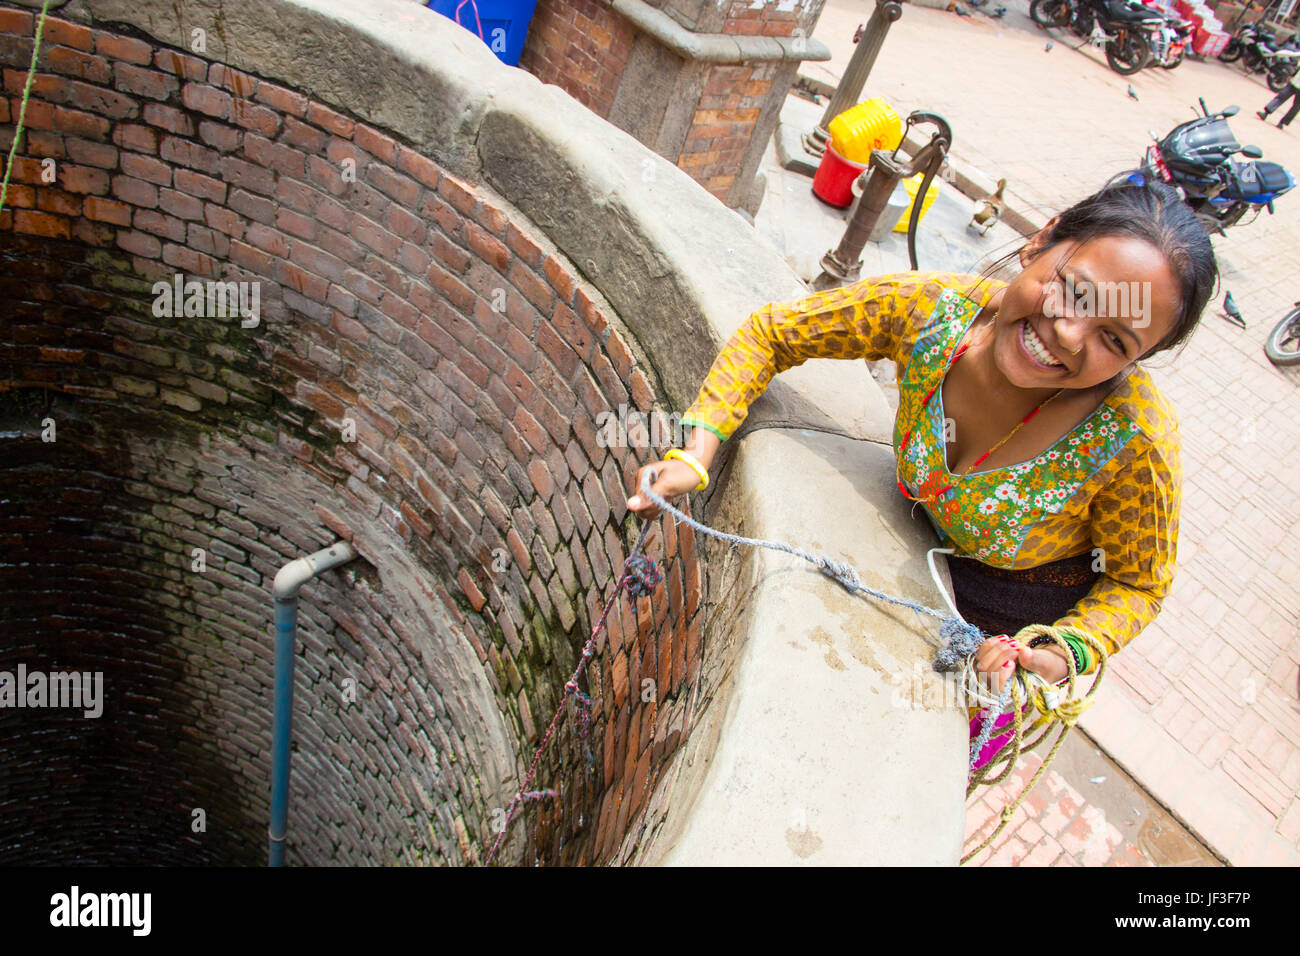 Young woman drawing water from a well in Bhaktapur, Kathmandu, Nepal - Stock Image